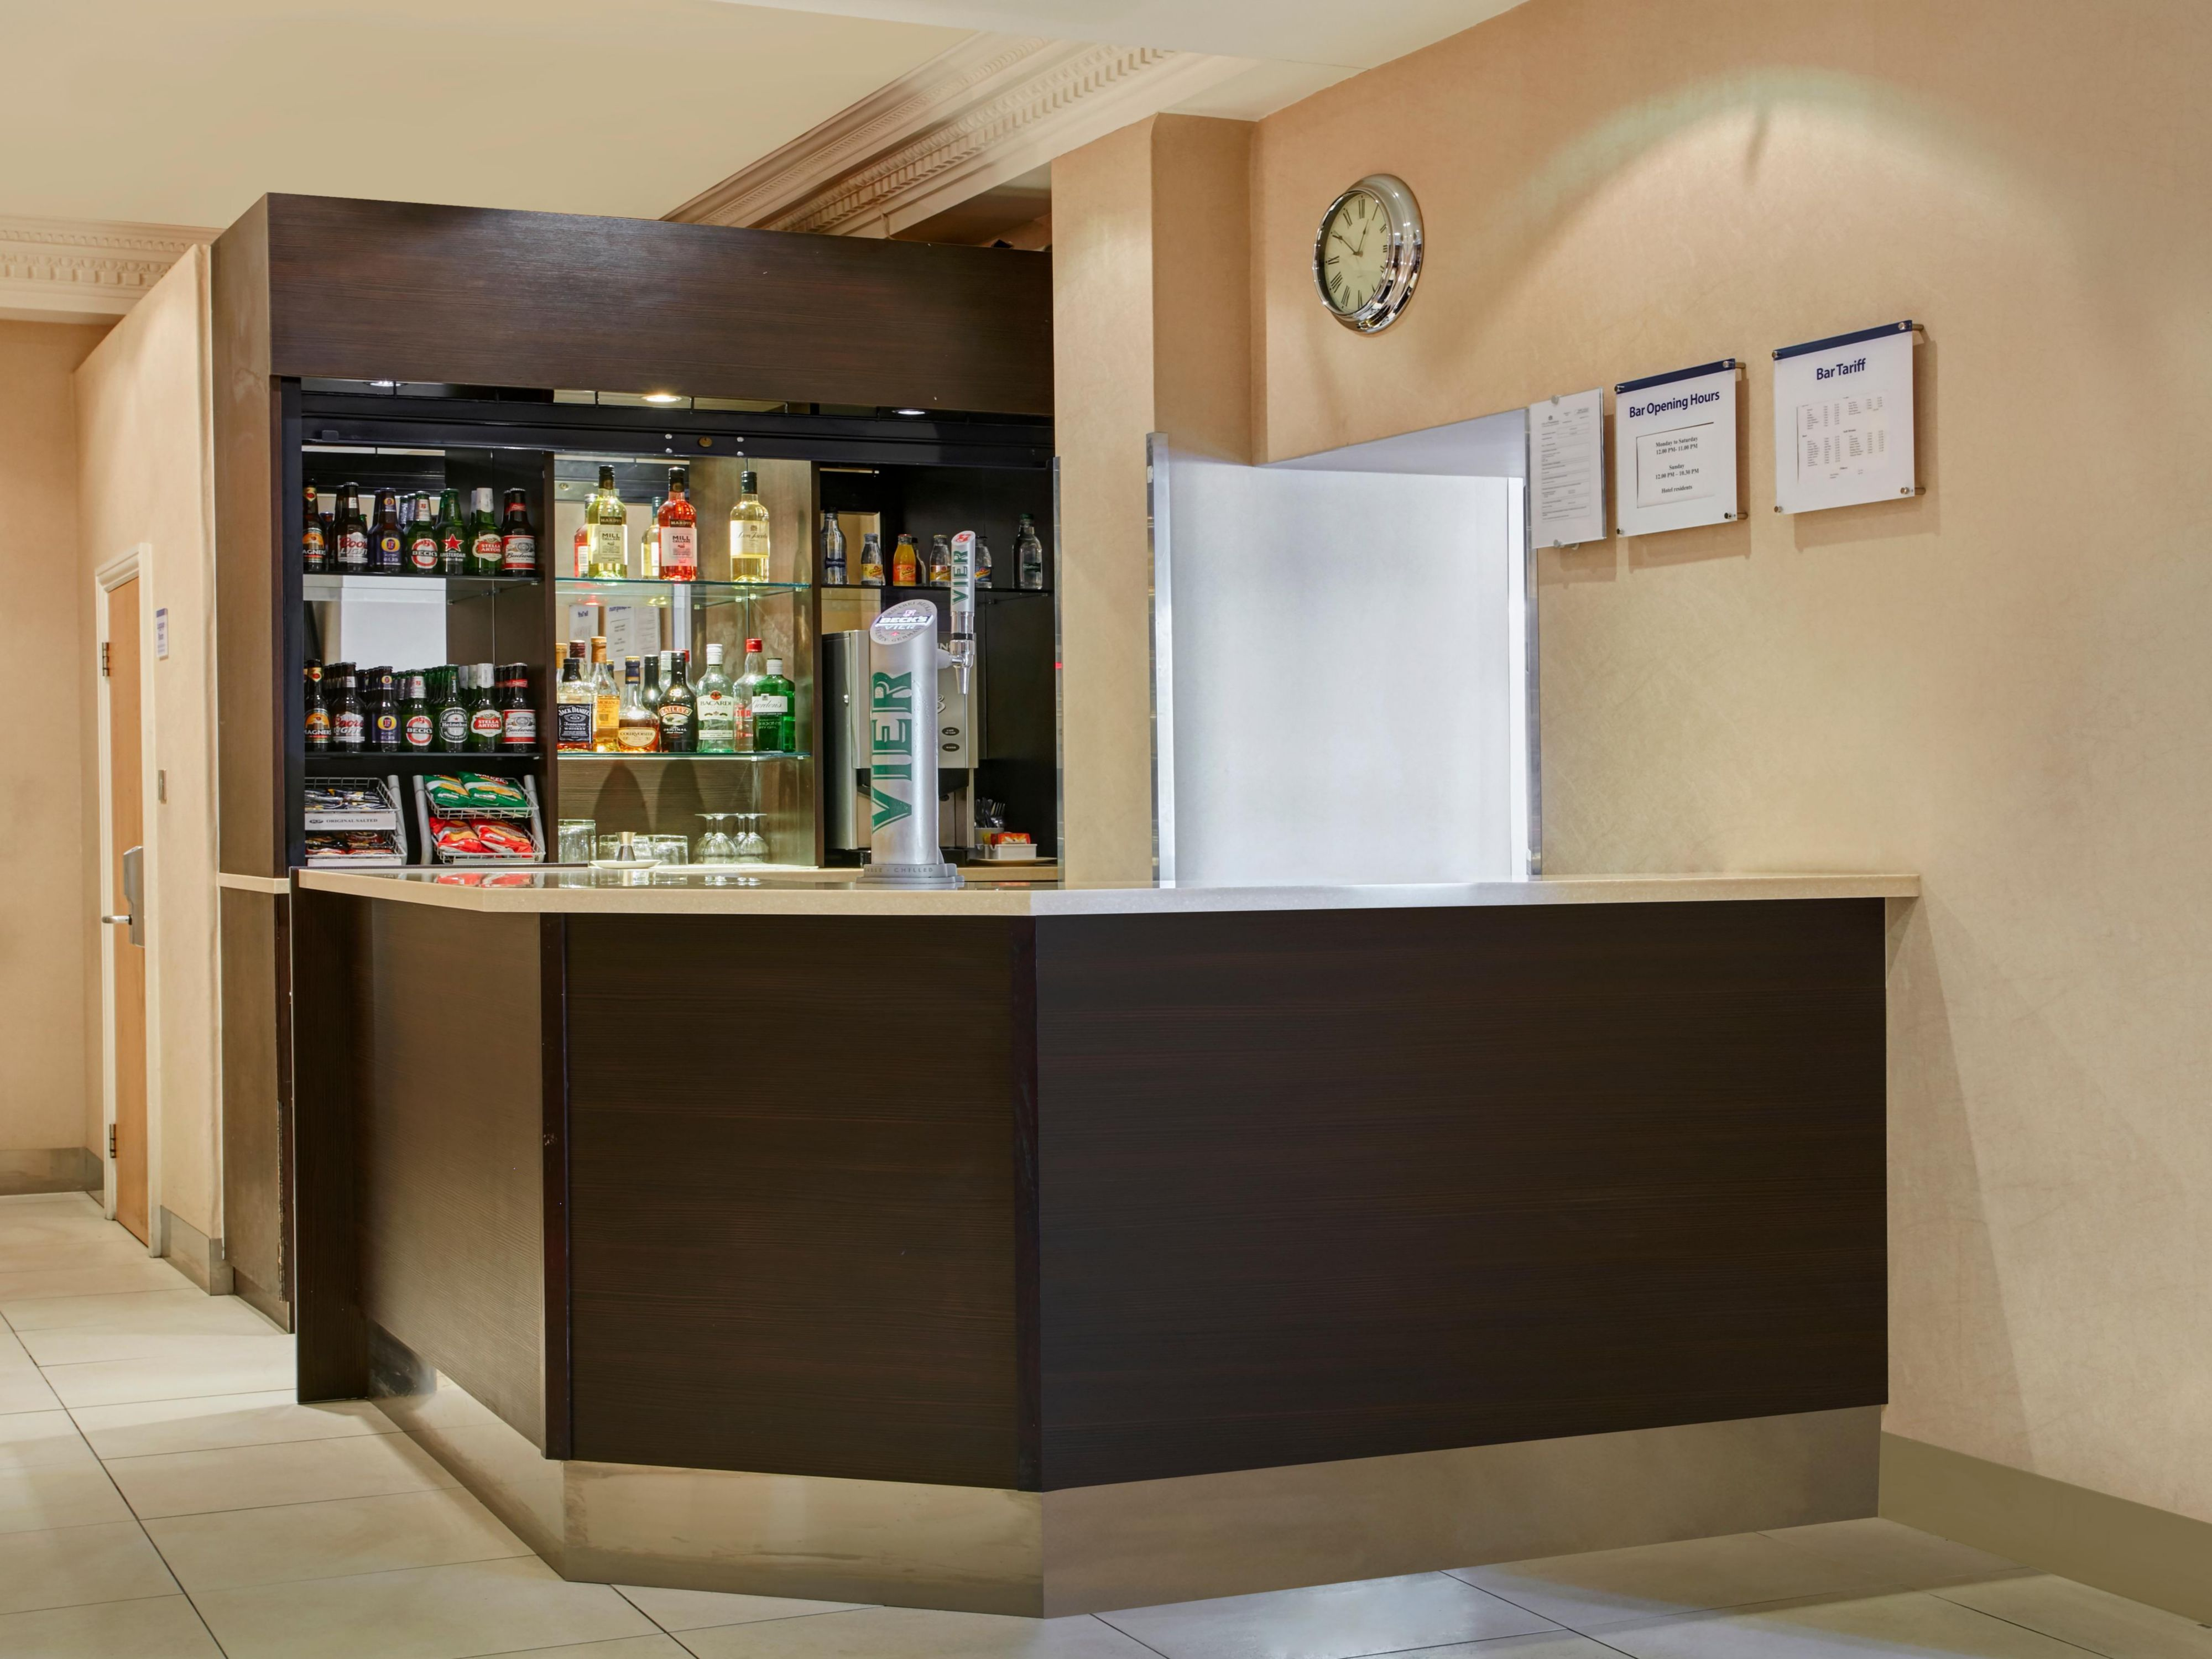 Wind down at Beverley Bar in Holiday Inn Express London Victoria